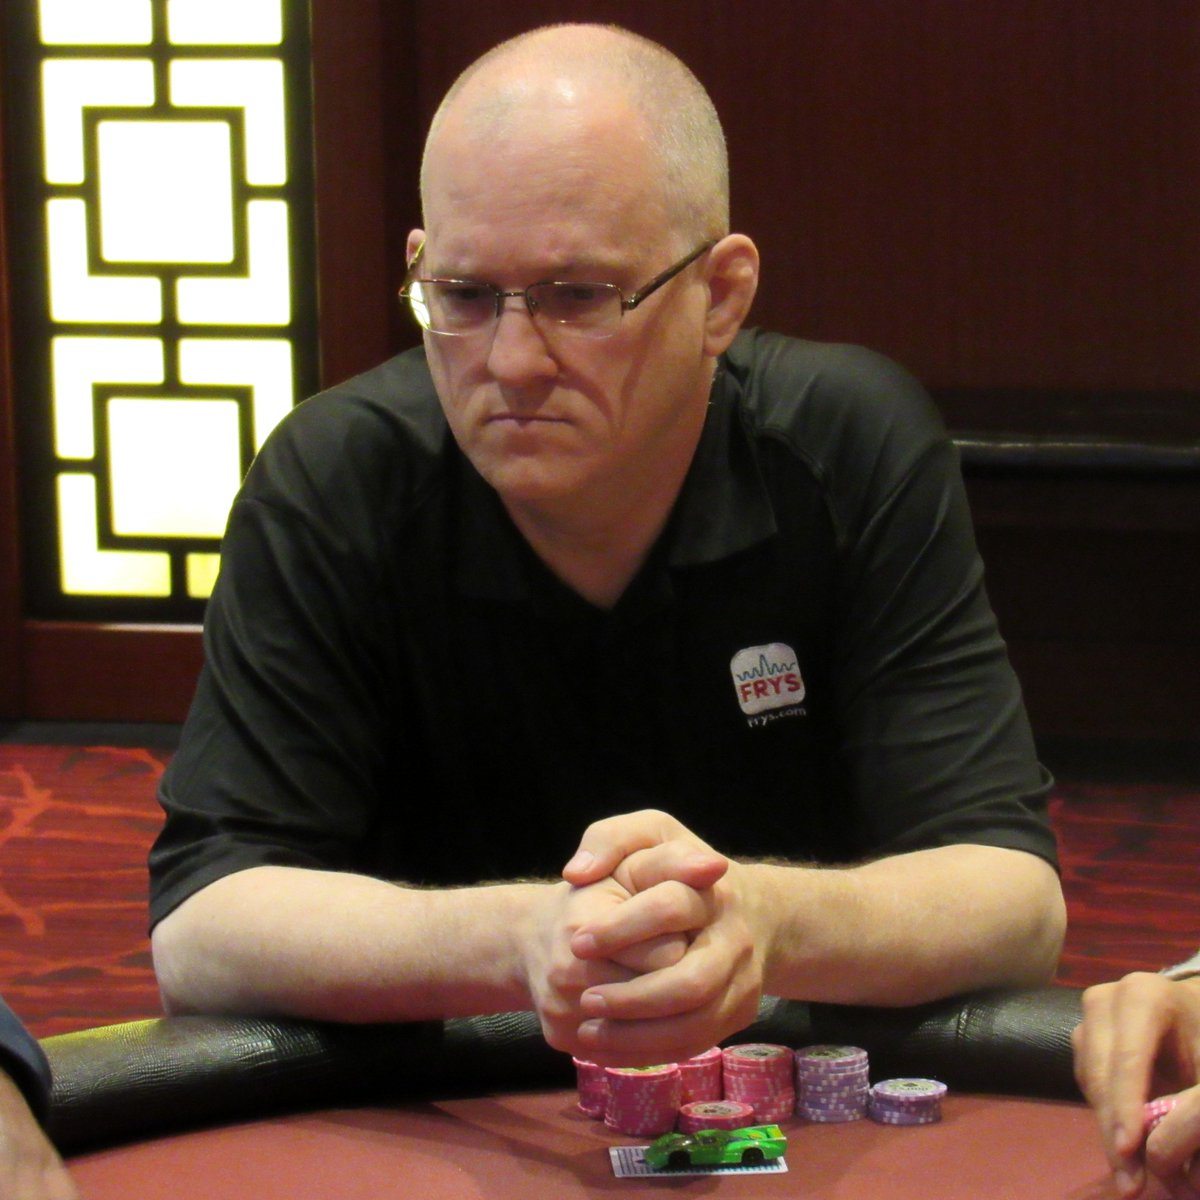 2nd Place: Dustin Wood ($40,170)